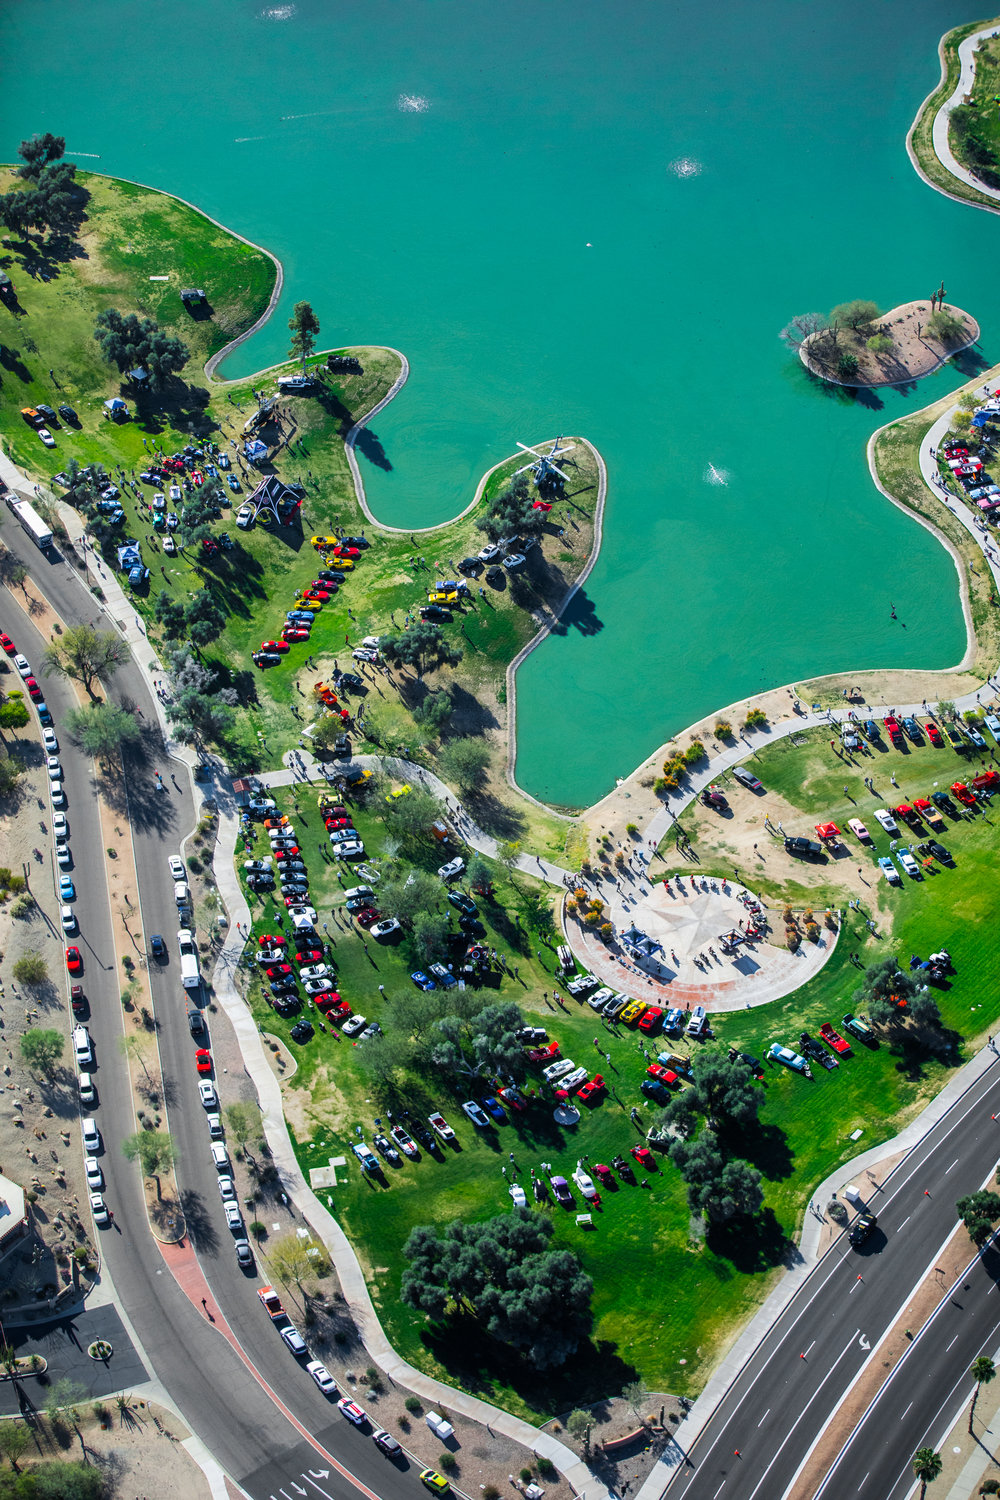 Concours in the Hills 2018 Aerials WEB-2.jpg